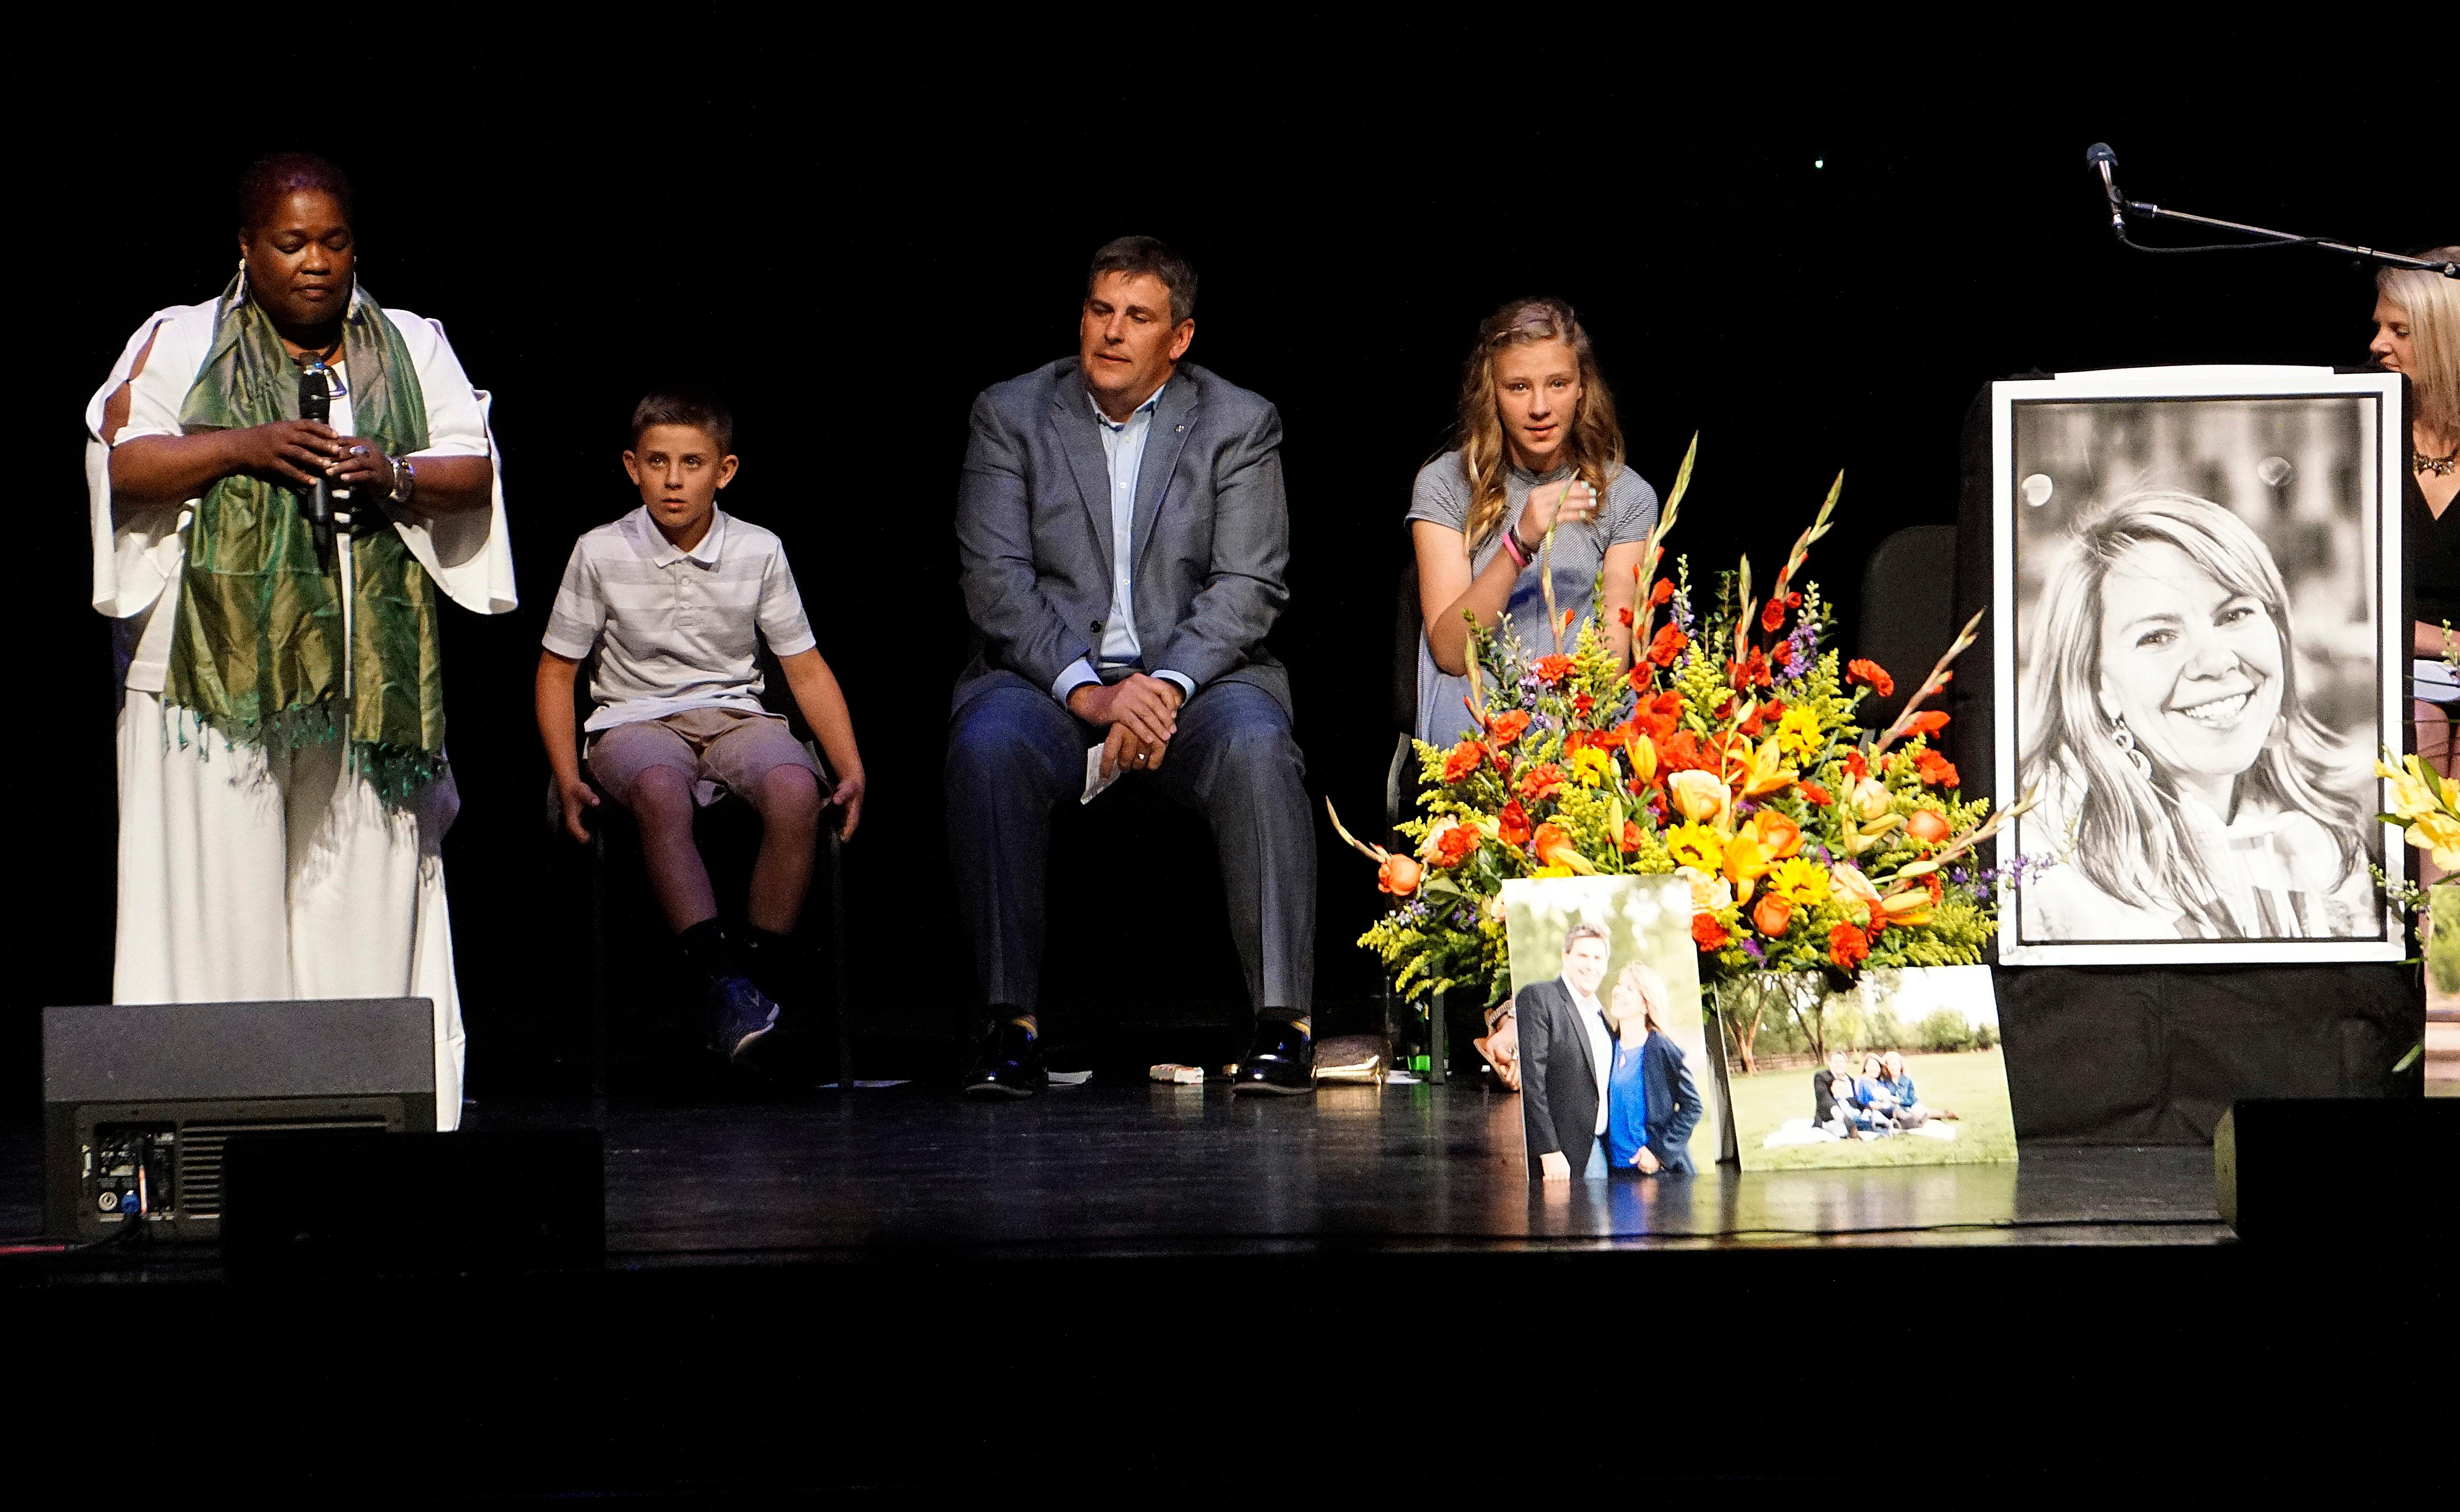 Cathryn McGill, standing, performs a song at a memorial service for Michael Riordan's wife Jennifer, who died on Tuesday in the Southwest Airlines flight 1380 accident, at Popejoy Hall on the campus of the University of New Mexico in Albuquerque, N.M., Sunday, April 22, 2018. From second left are Jennifer's son, Joshua, husband, Michael and daughter Avrie Riordan. (Adolphe Pierre-Louis/The Albuquerque Journal via AP)